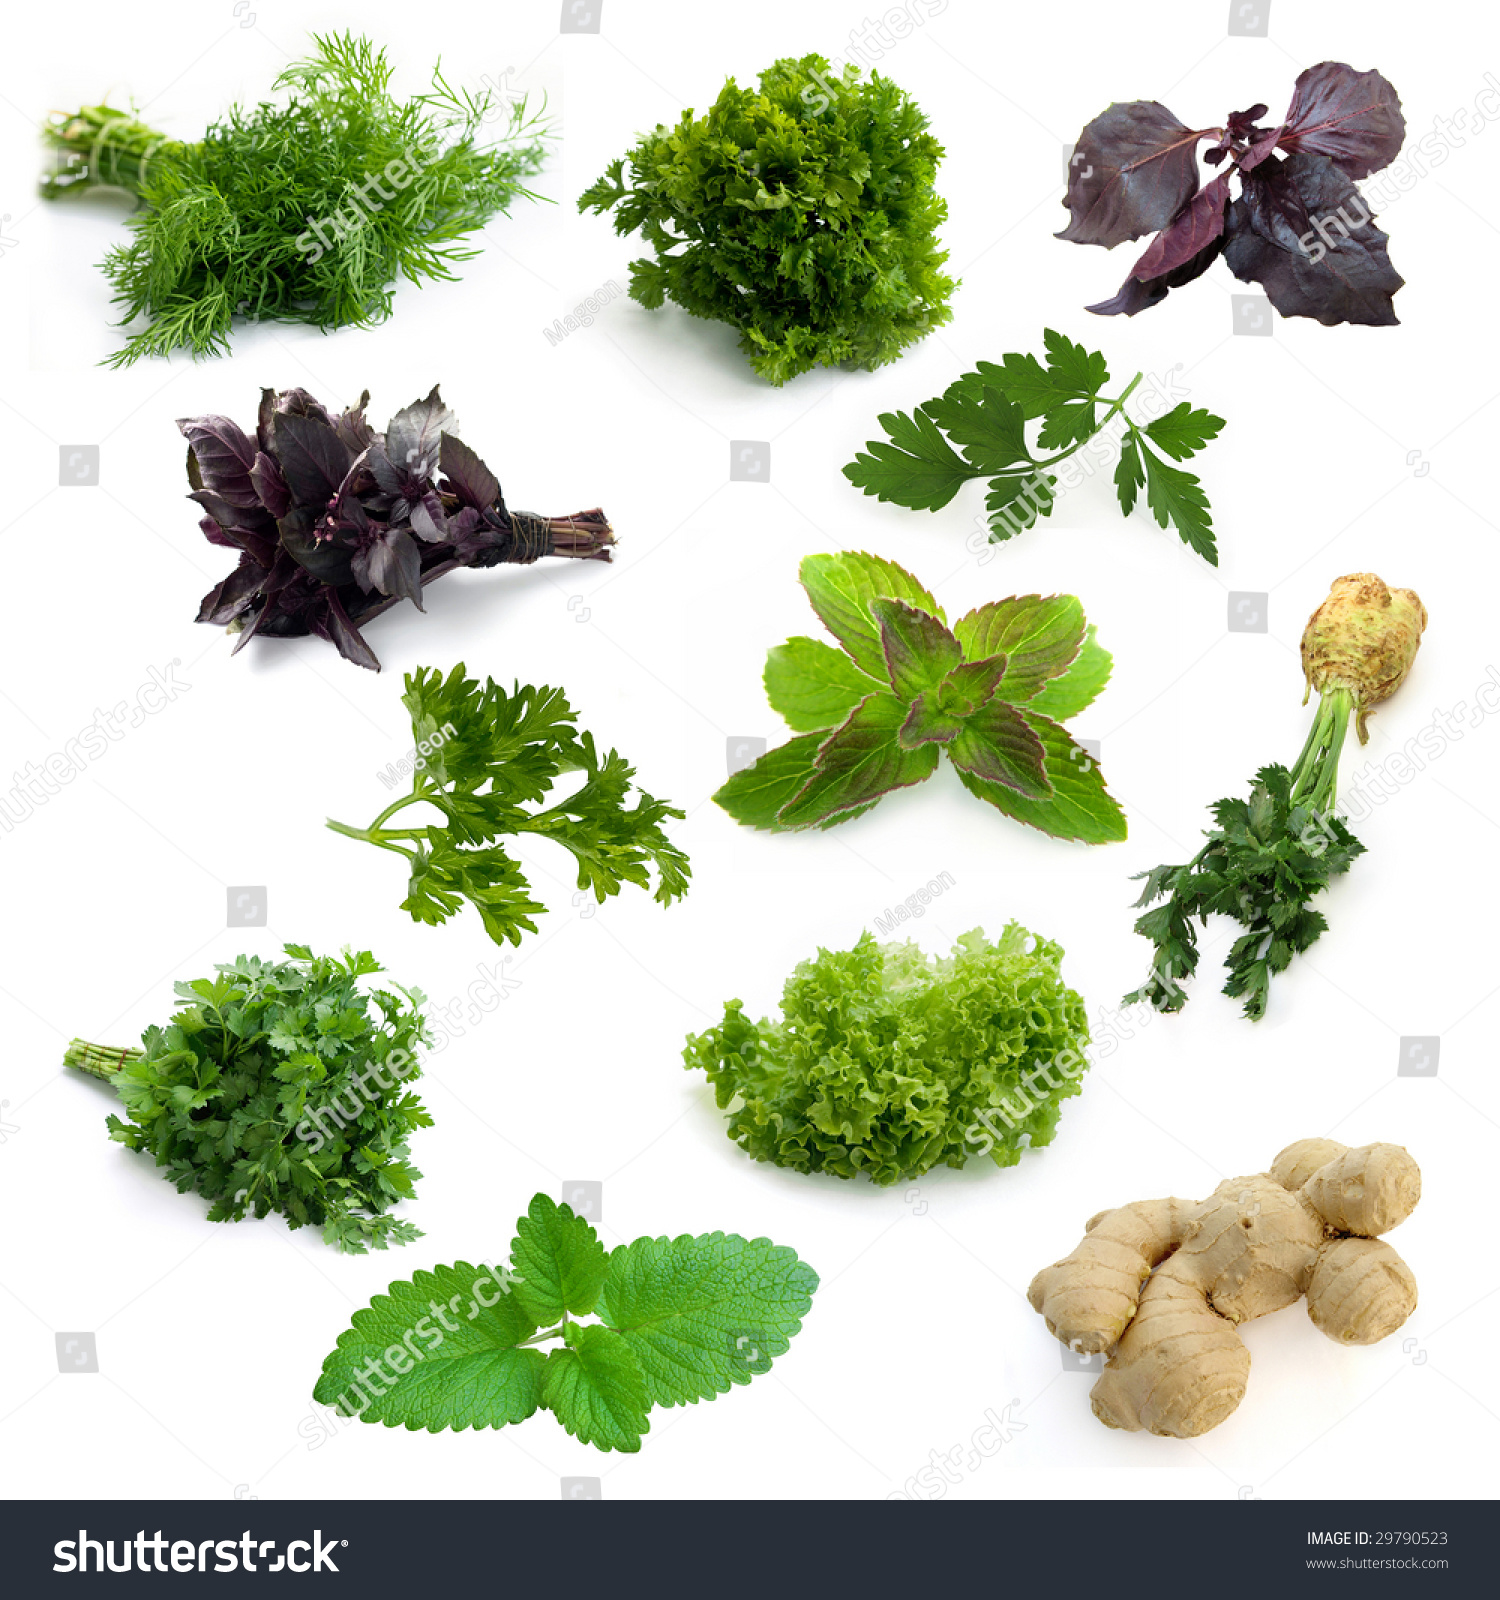 Different herbs royalty free stock image image 16265346 - Image Gallery Different Herbs Wallpaper Gallery Image Gallery Different Herbs Image Gallery Different Herbs Wallpaper Different Herbs Royalty Free Stock